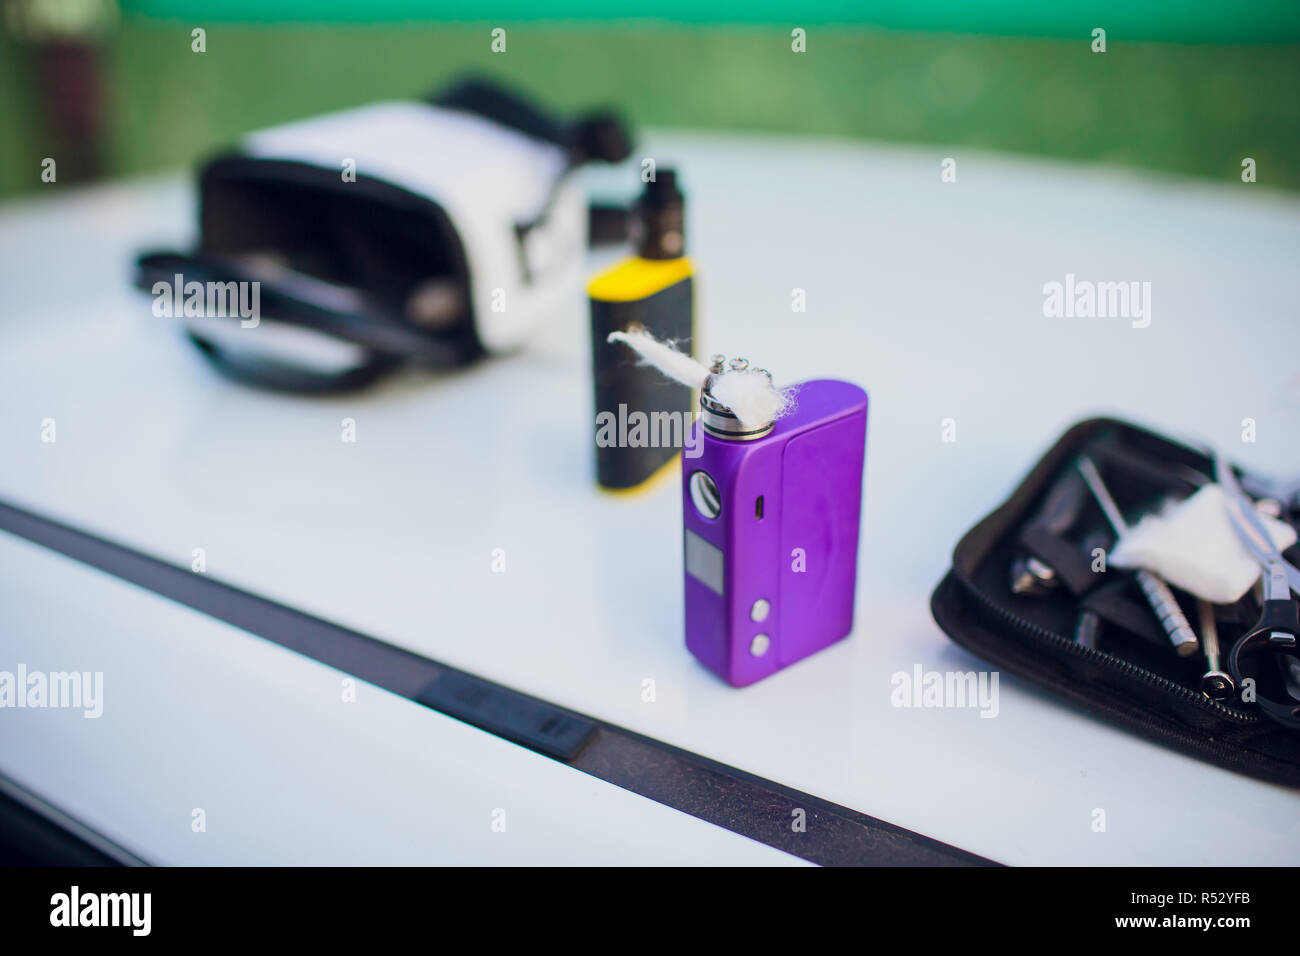 Rebuildable dripping atomizer or RDA for vaping or e-cigarette with Alien Clapton coil and cotton stripes wetted with e-liquid, modern vape device for quit smoking, macro photo with selective focus - Stock Image